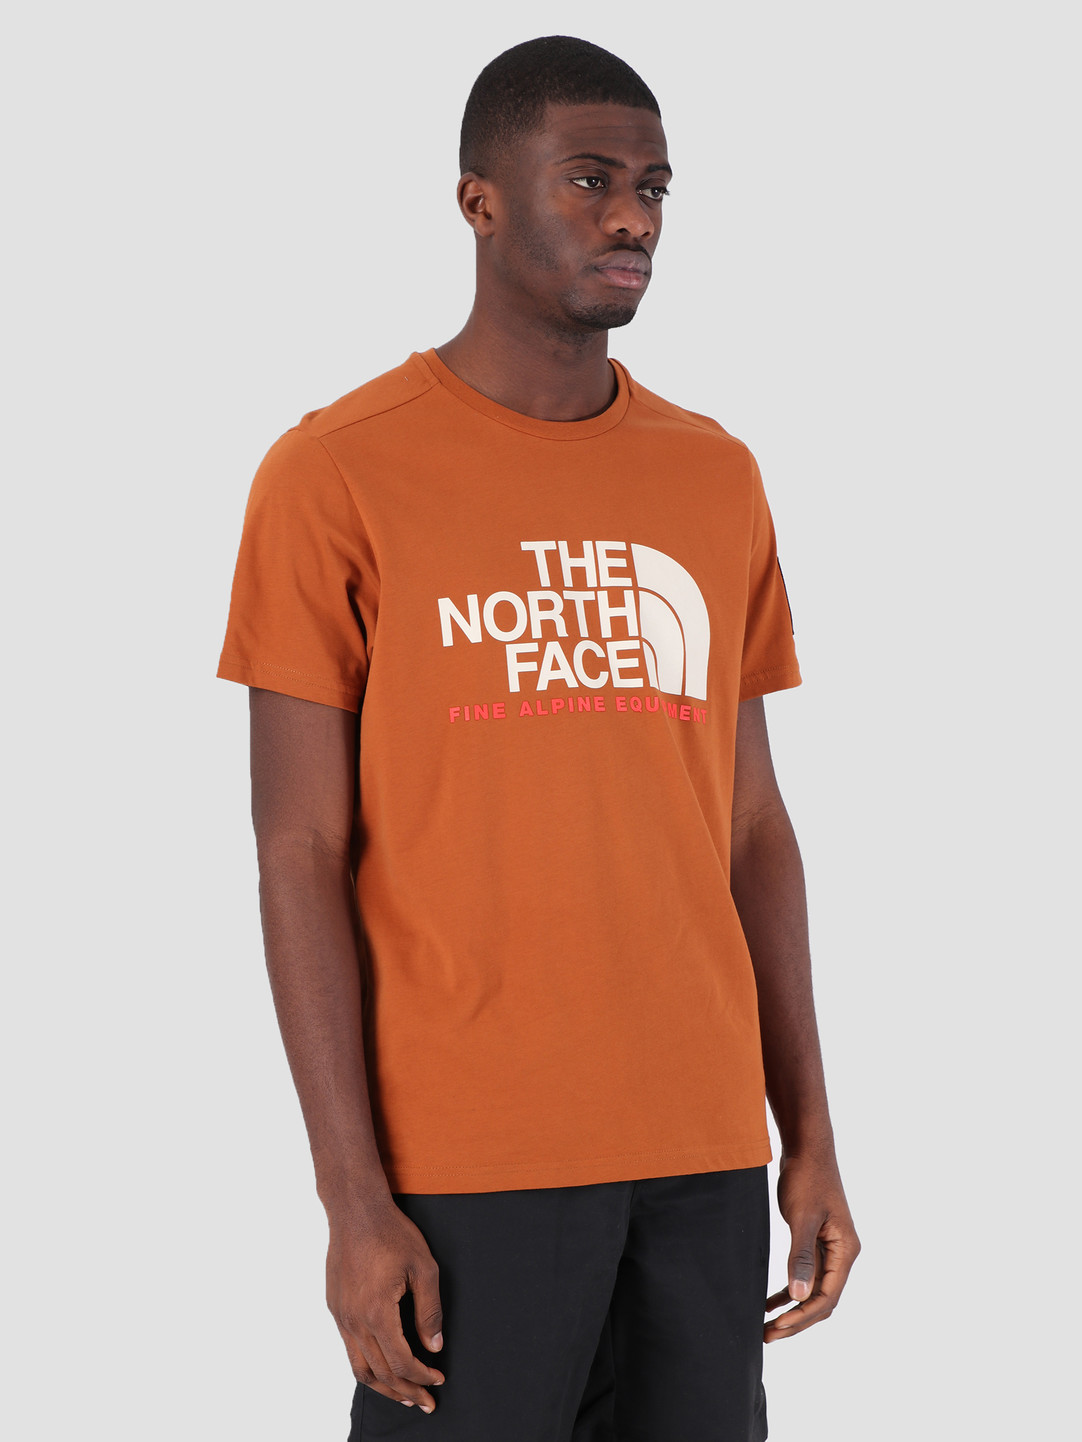 The North Face The North Face Fine T-Shirt Alp Equ Caramel Cafe T93RXKUBT